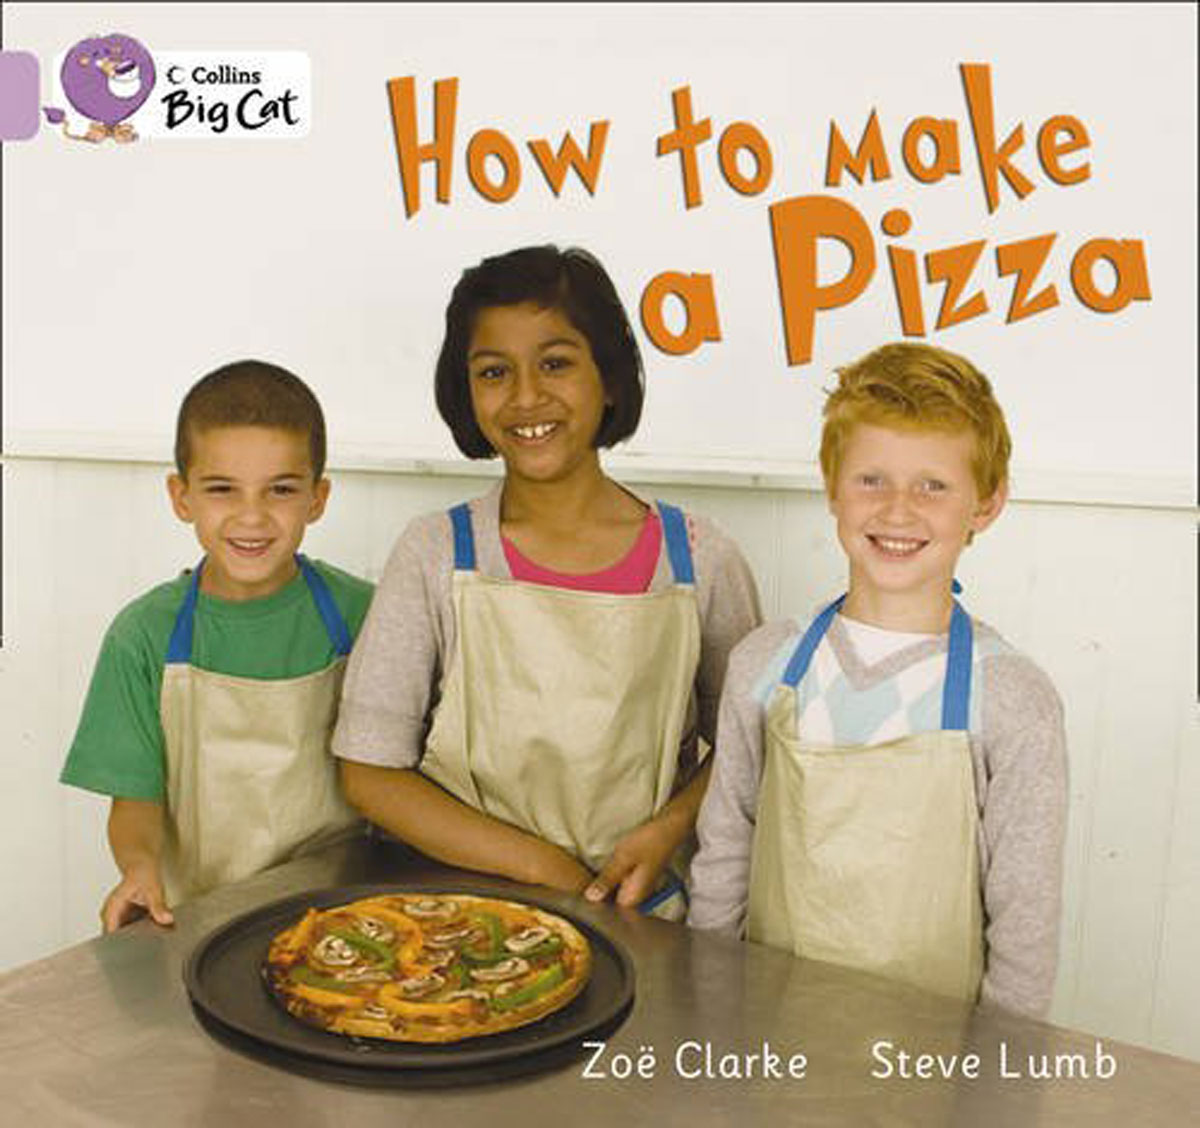 How to Make a Pizza doug lemov reading reconsidered a practical guide to rigorous literacy instruction